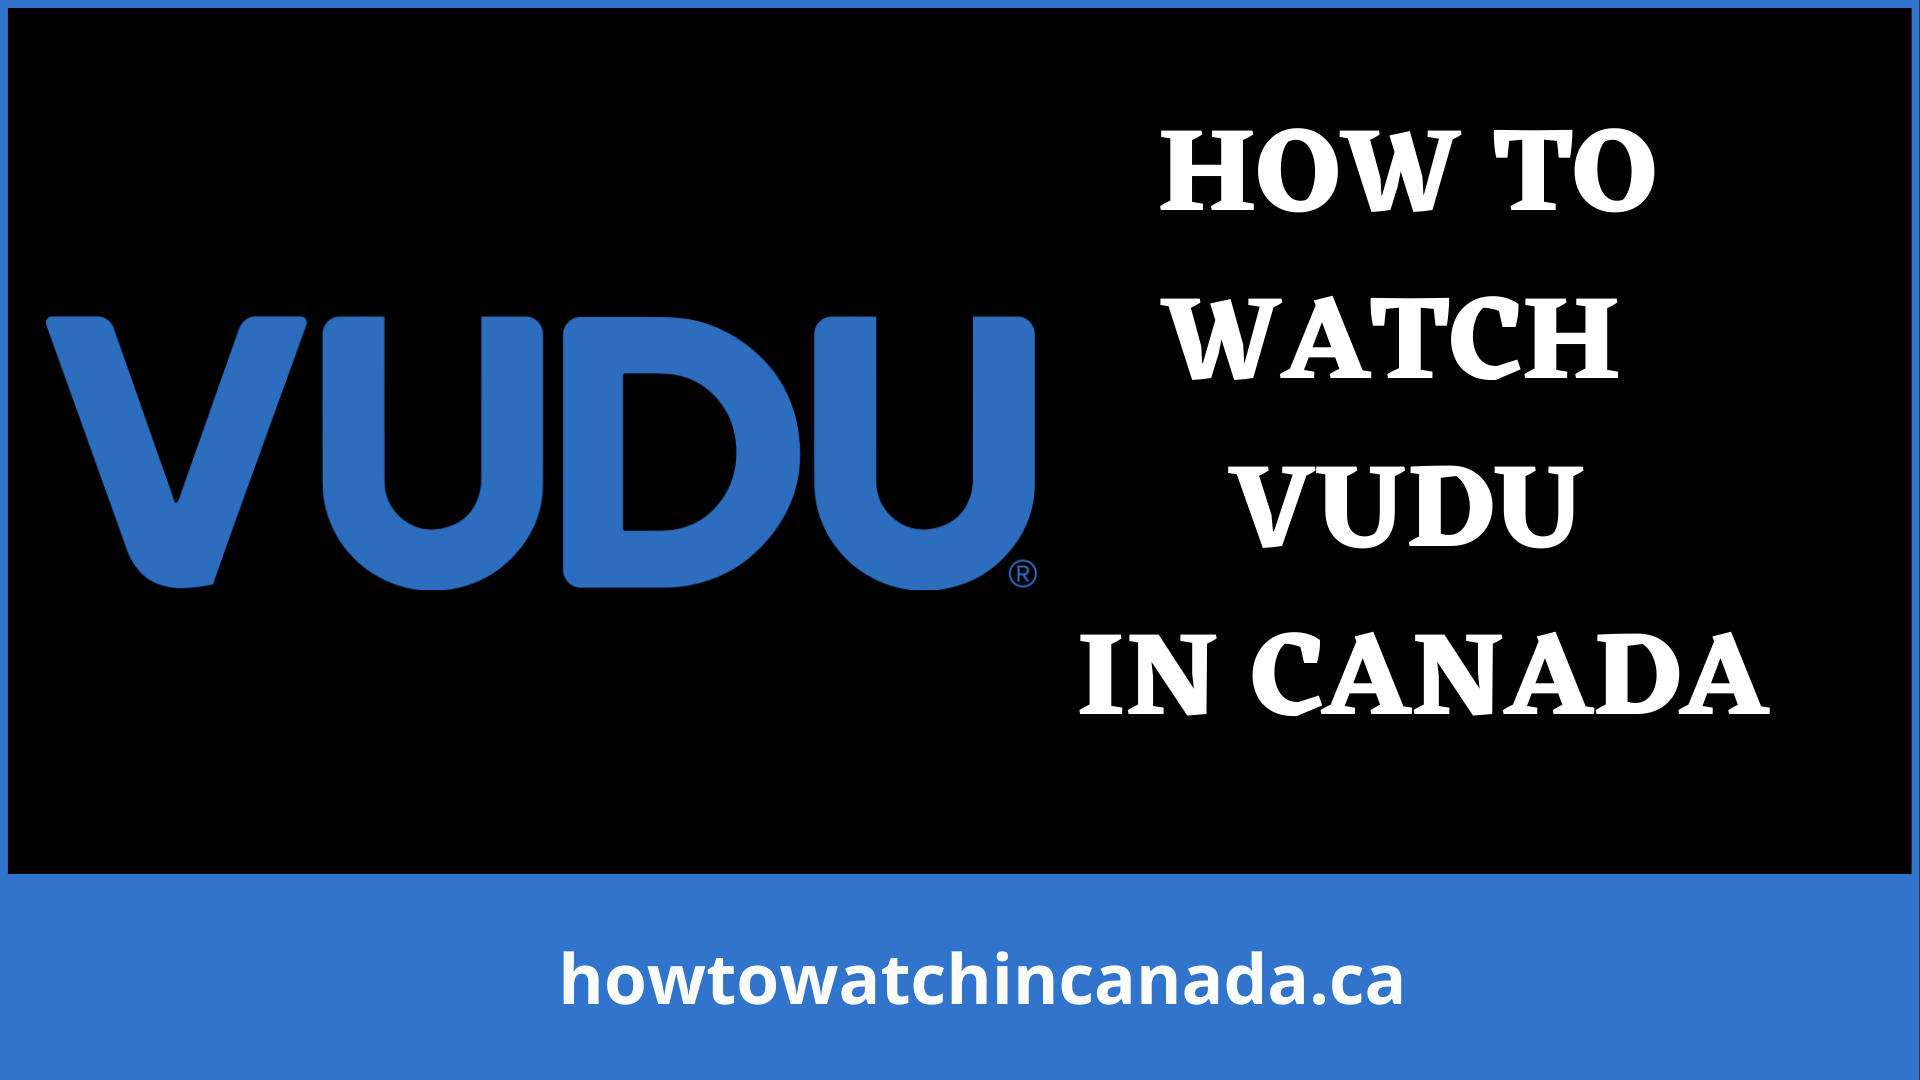 vudu-feat-how-to-watch-in-canada